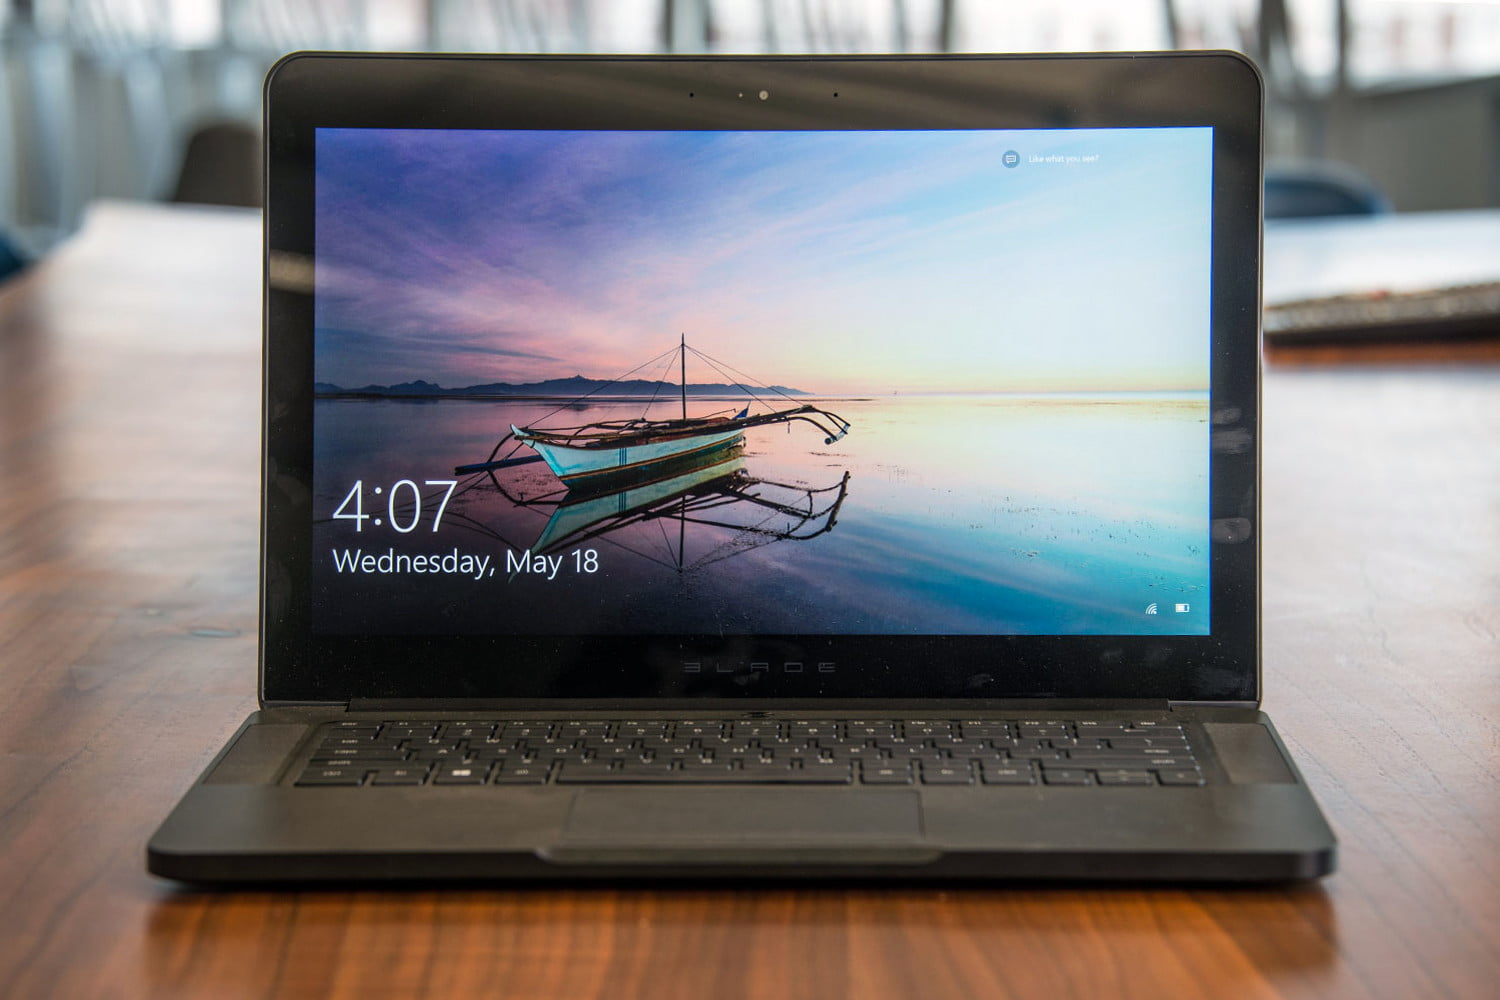 The best gaming laptops - The Laptop Review